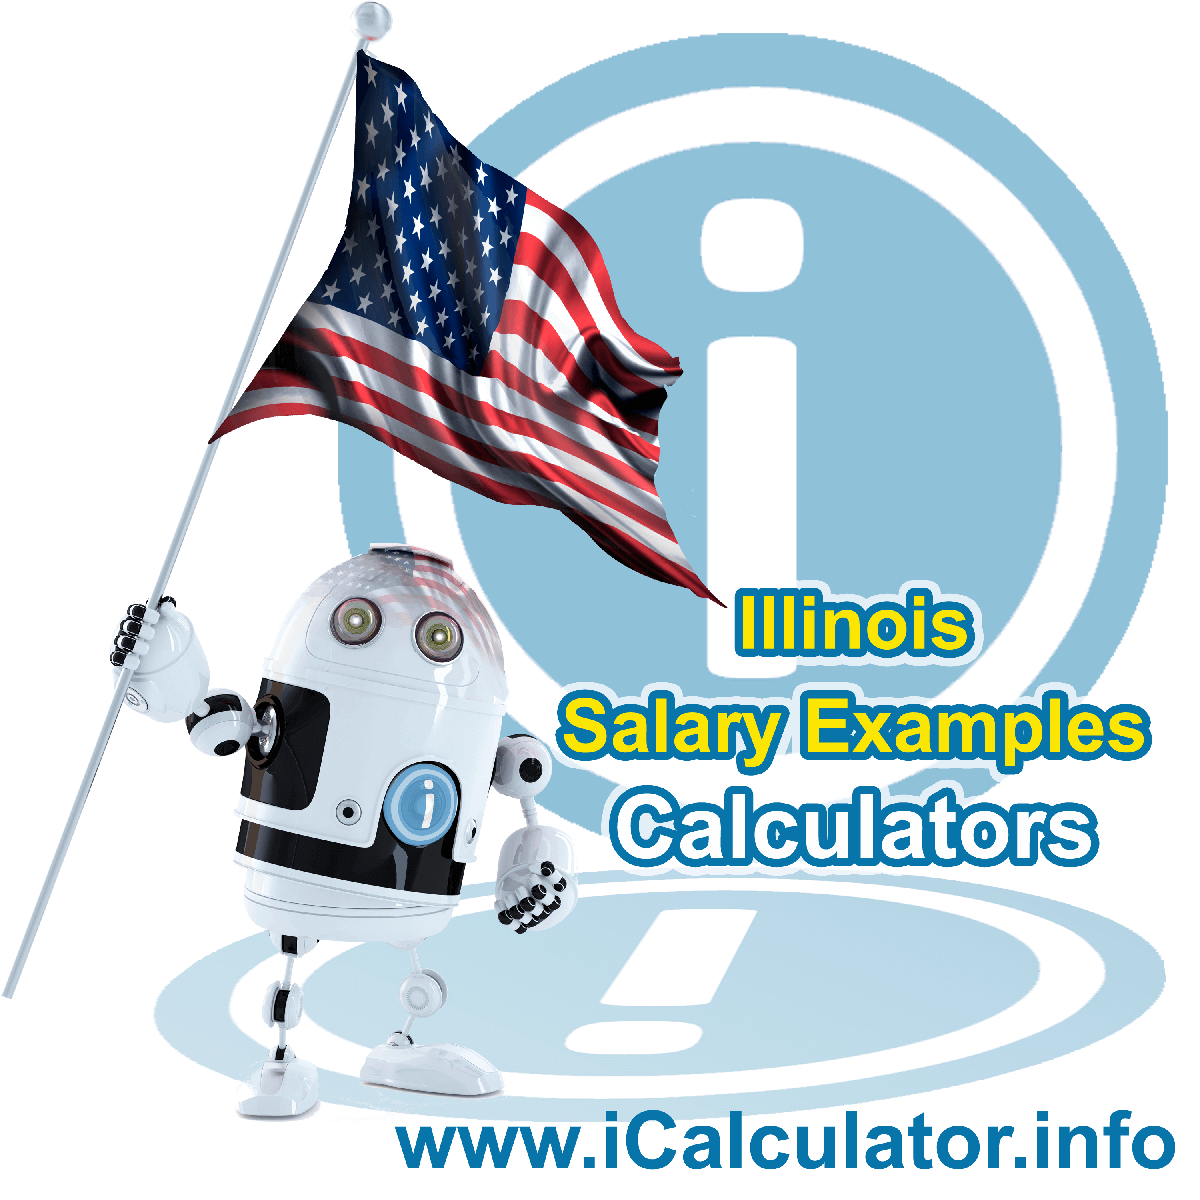 Illinois Salary Example for $5,000.00 in 2020 | iCalculator | $5,000.00 salary example for employee and employer paying Illinois State tincome taxes. Detailed salary after tax calculation including Illinois State Tax, Federal State Tax, Medicare Deductions, Social Security, Capital Gains and other income tax and salary deductions complete with supporting Illinois state tax tables